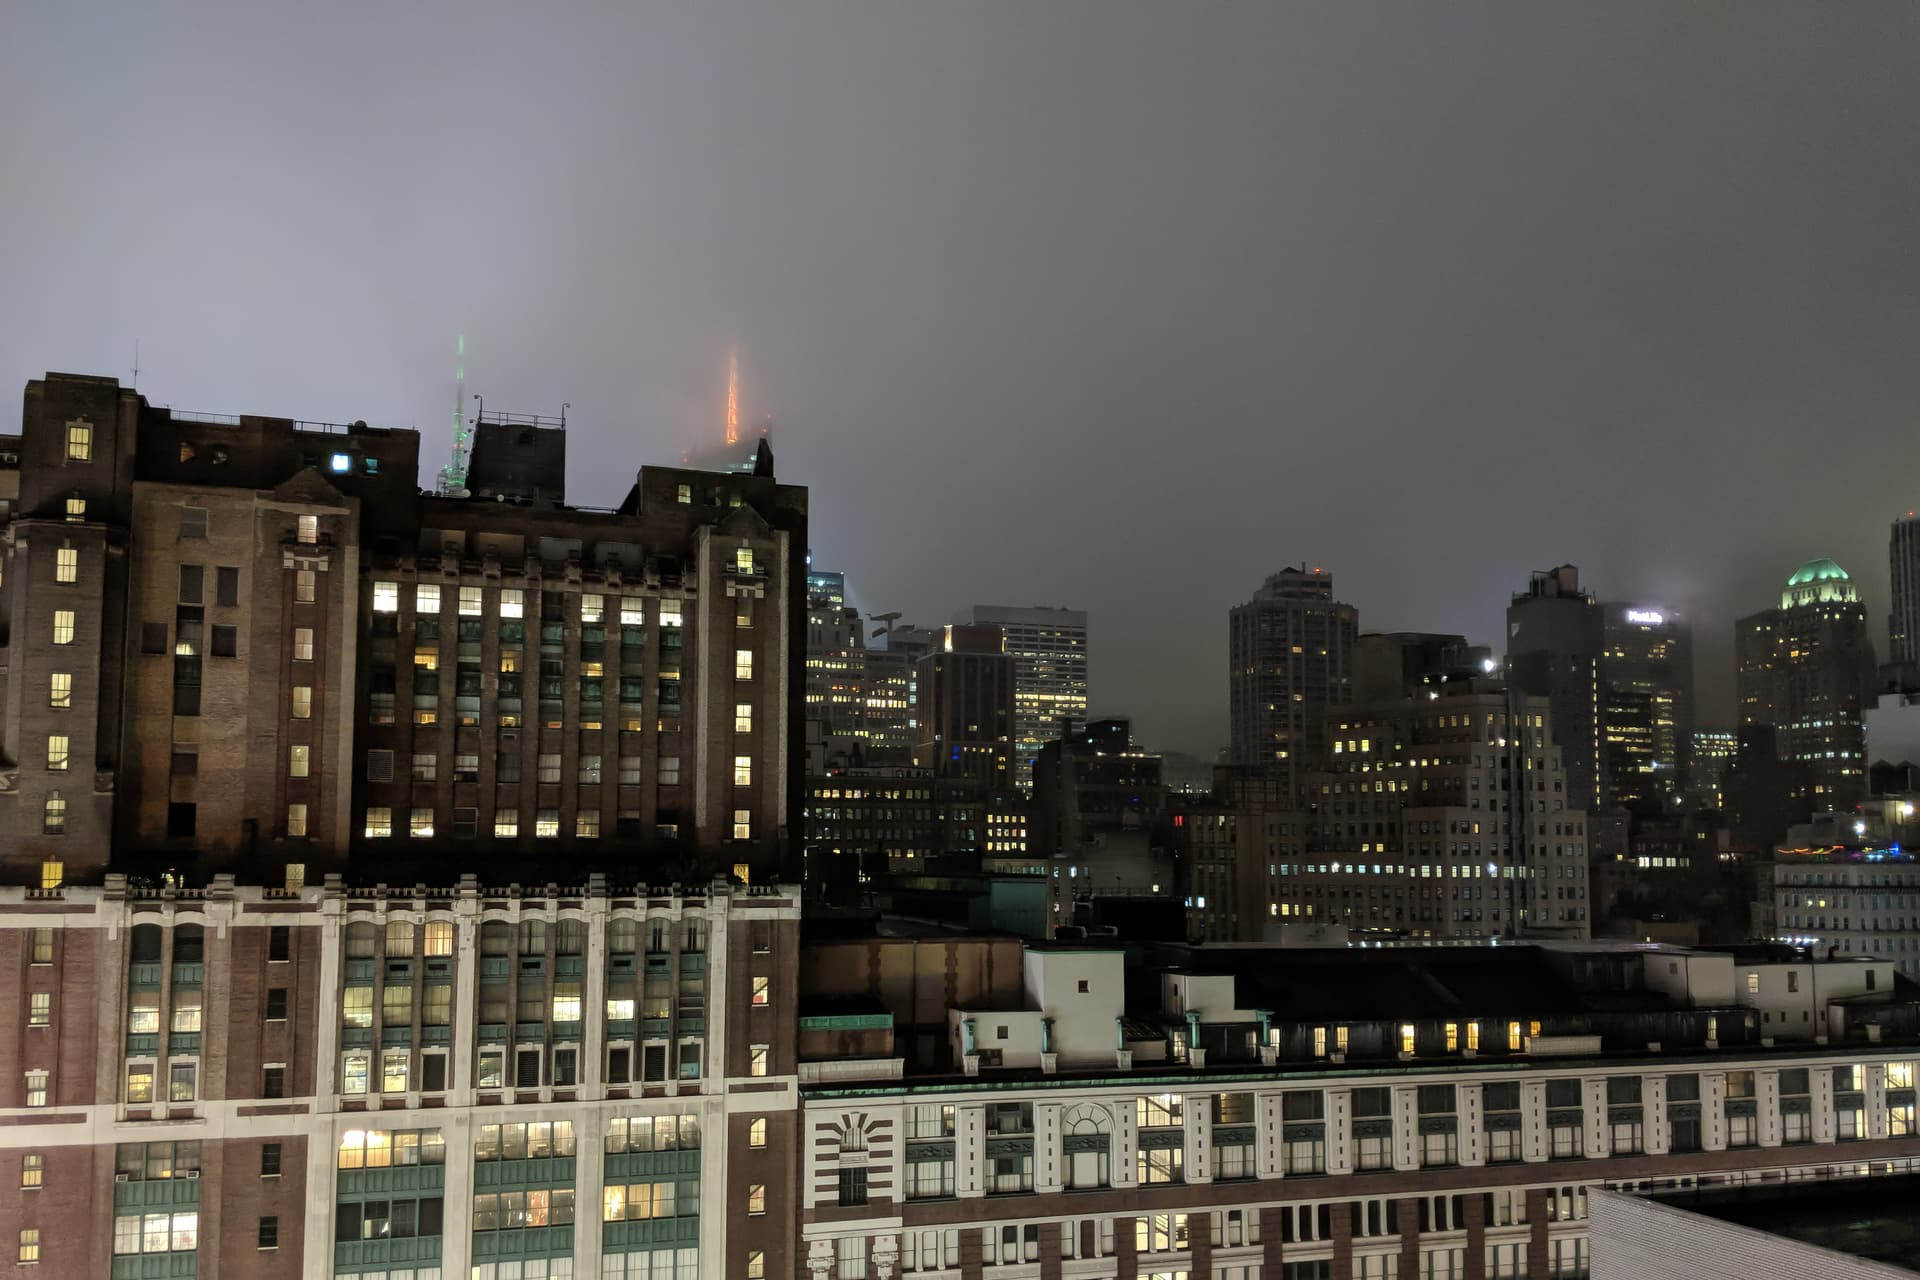 A New York City skyline at night. Low rain clouds hang overhead.